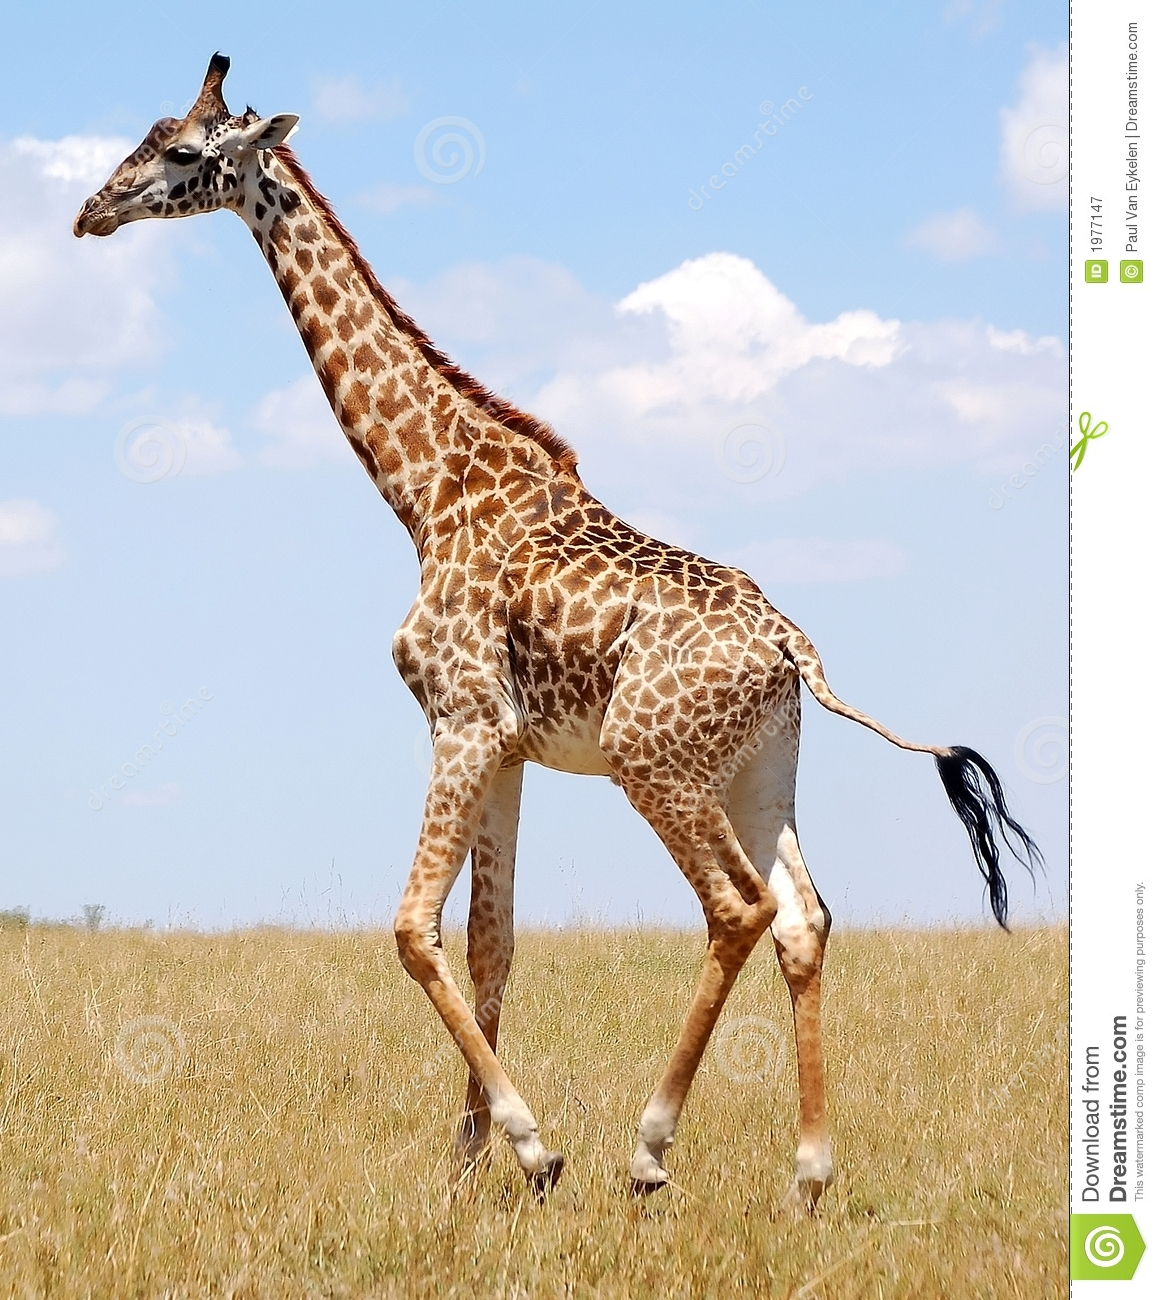 Walking Giraffe Royalty Free Stock Photography - Image: 1977147